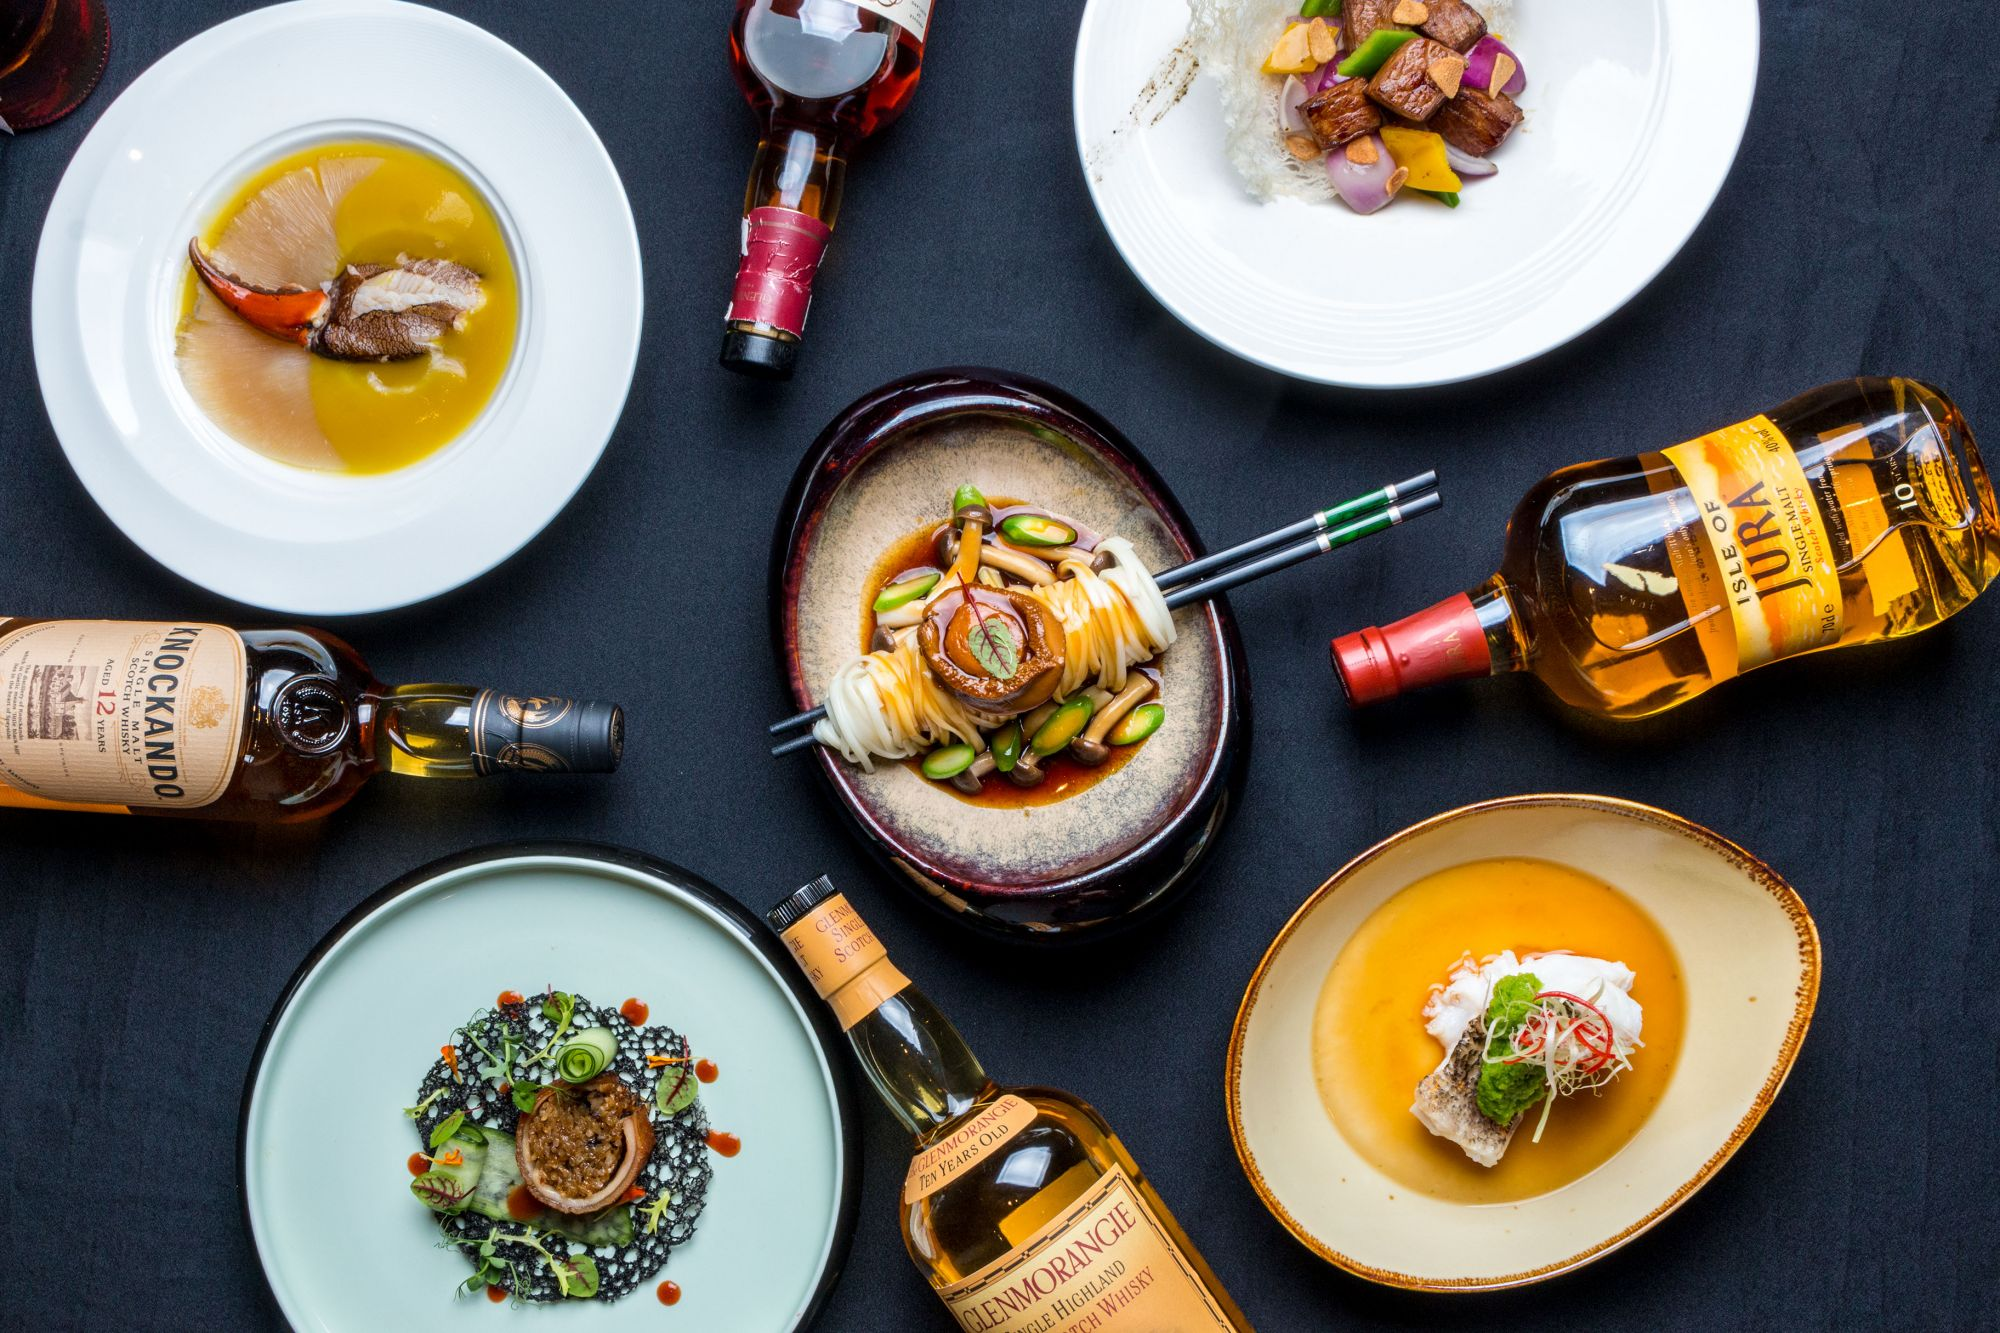 Hua Ting Boldly Pairs Fine Cantonese Fare With Whisky